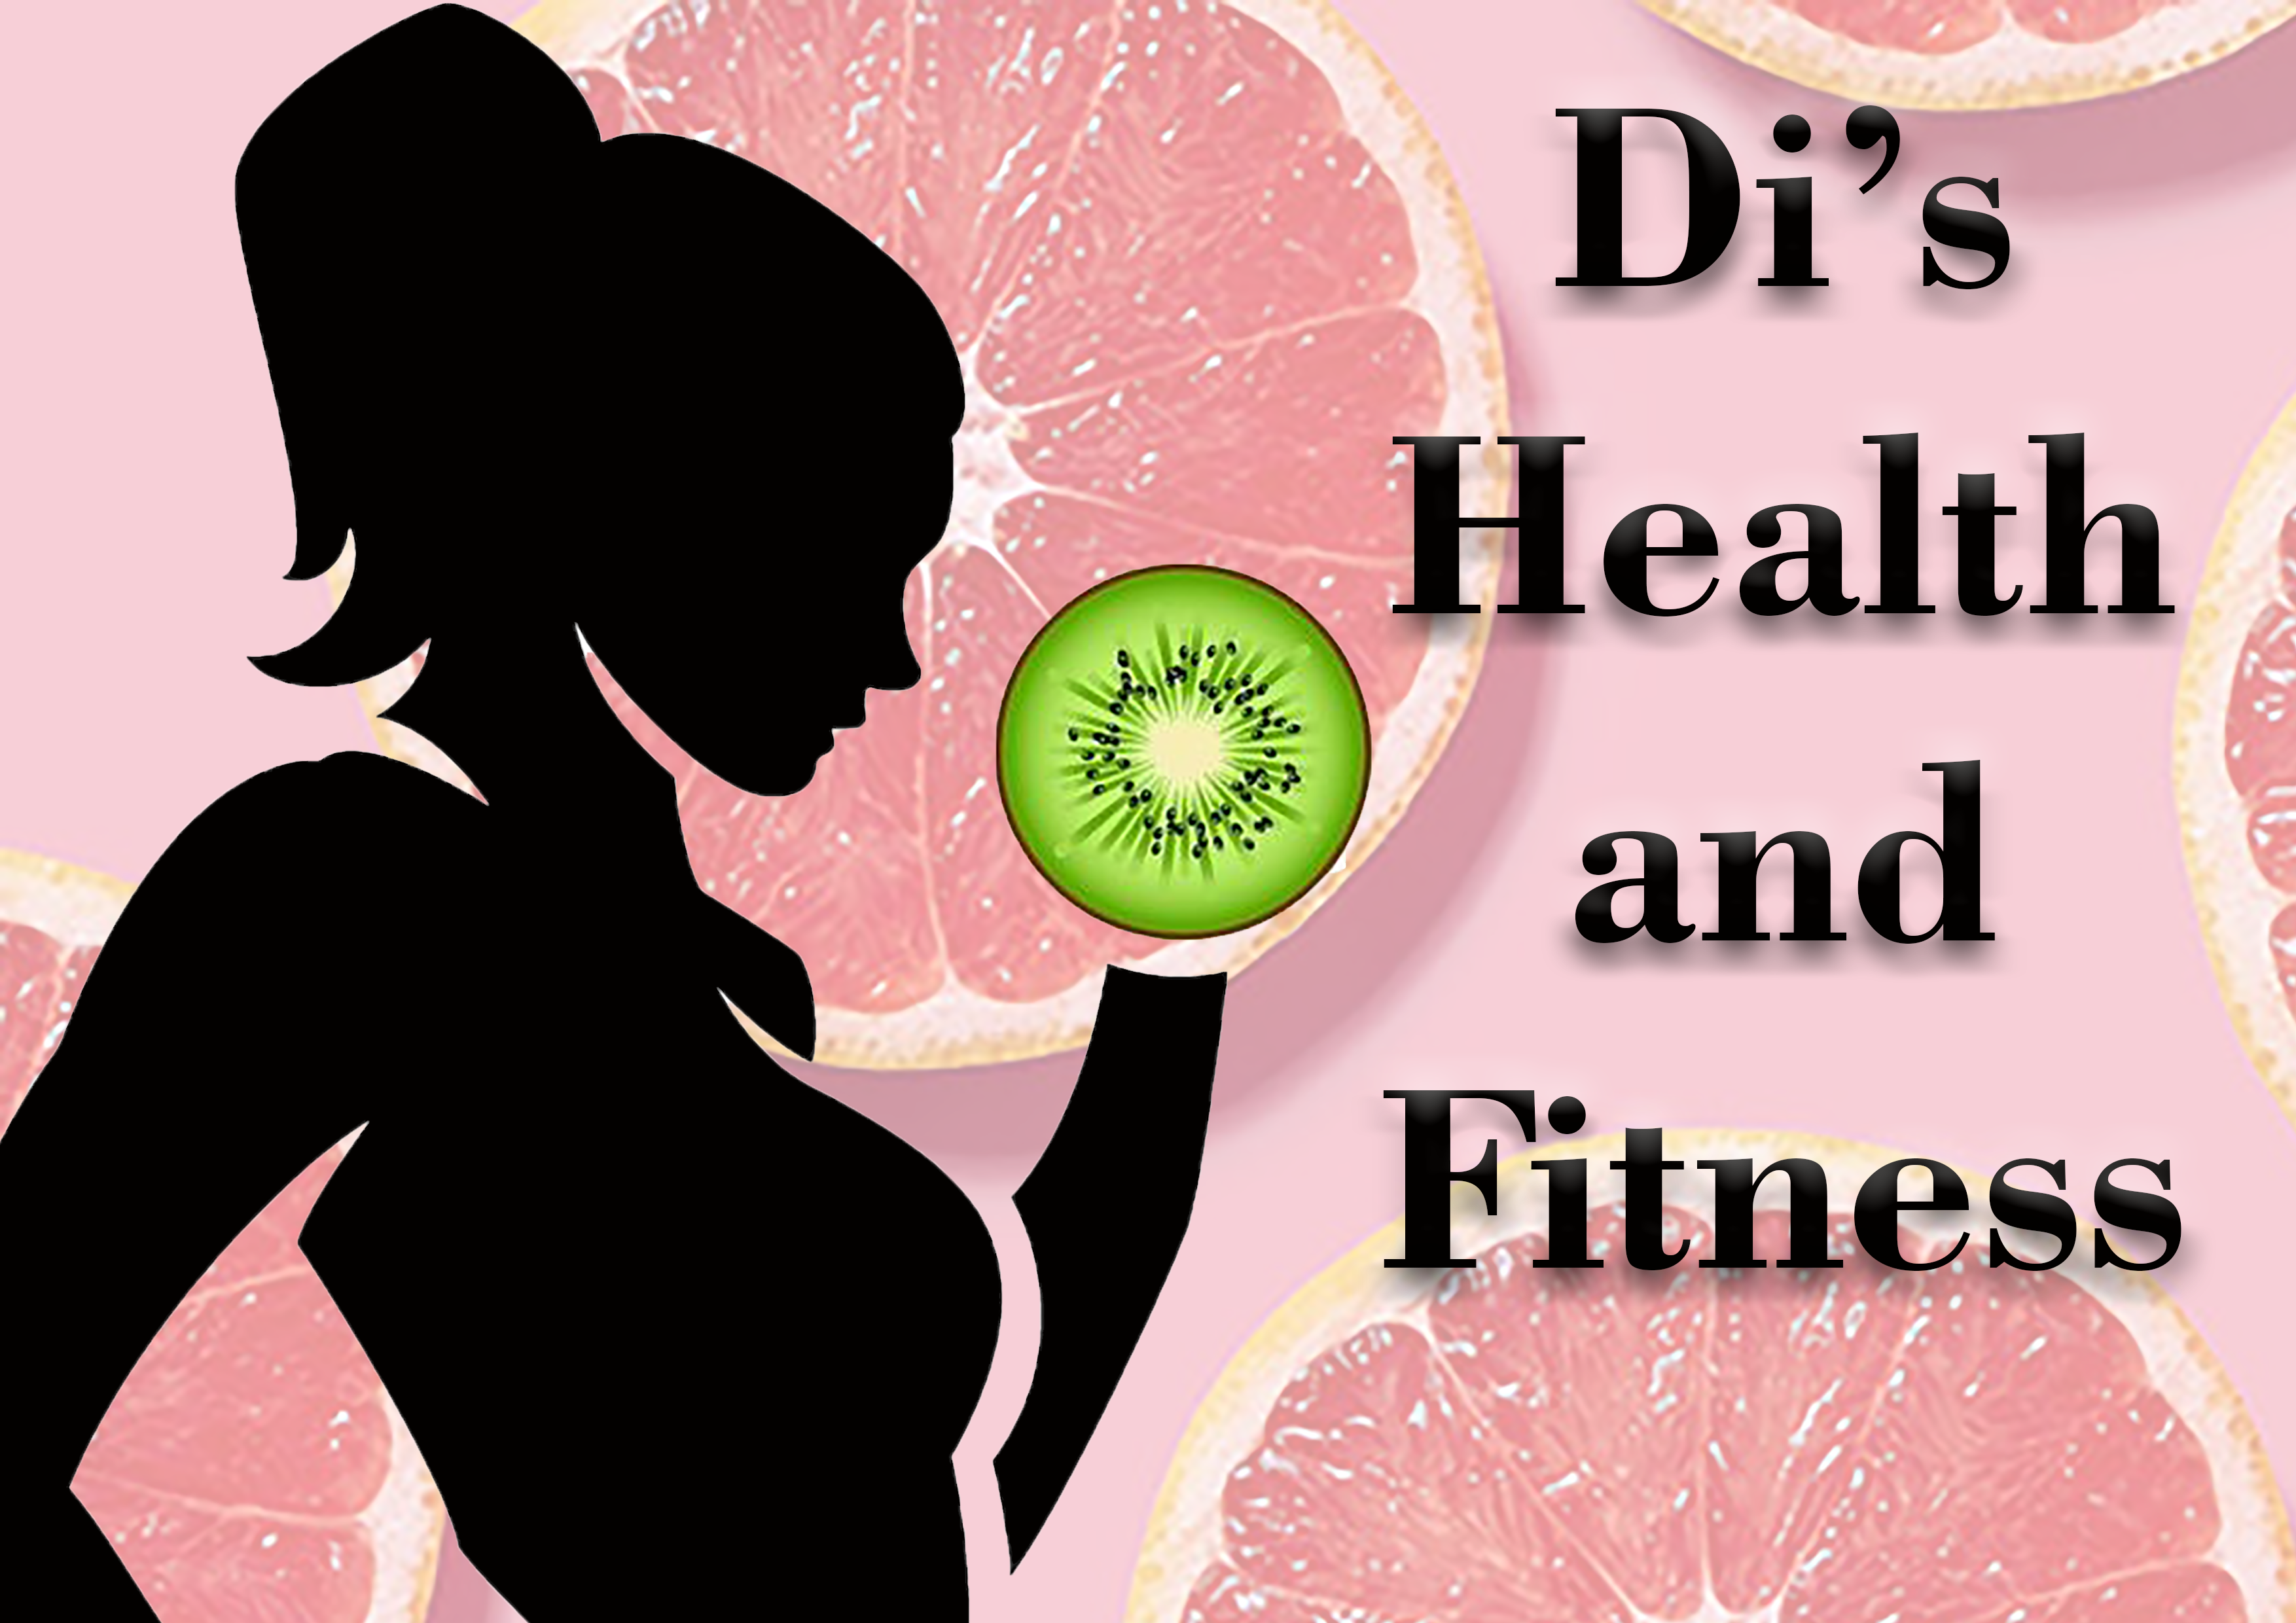 Di's Health and Fitness